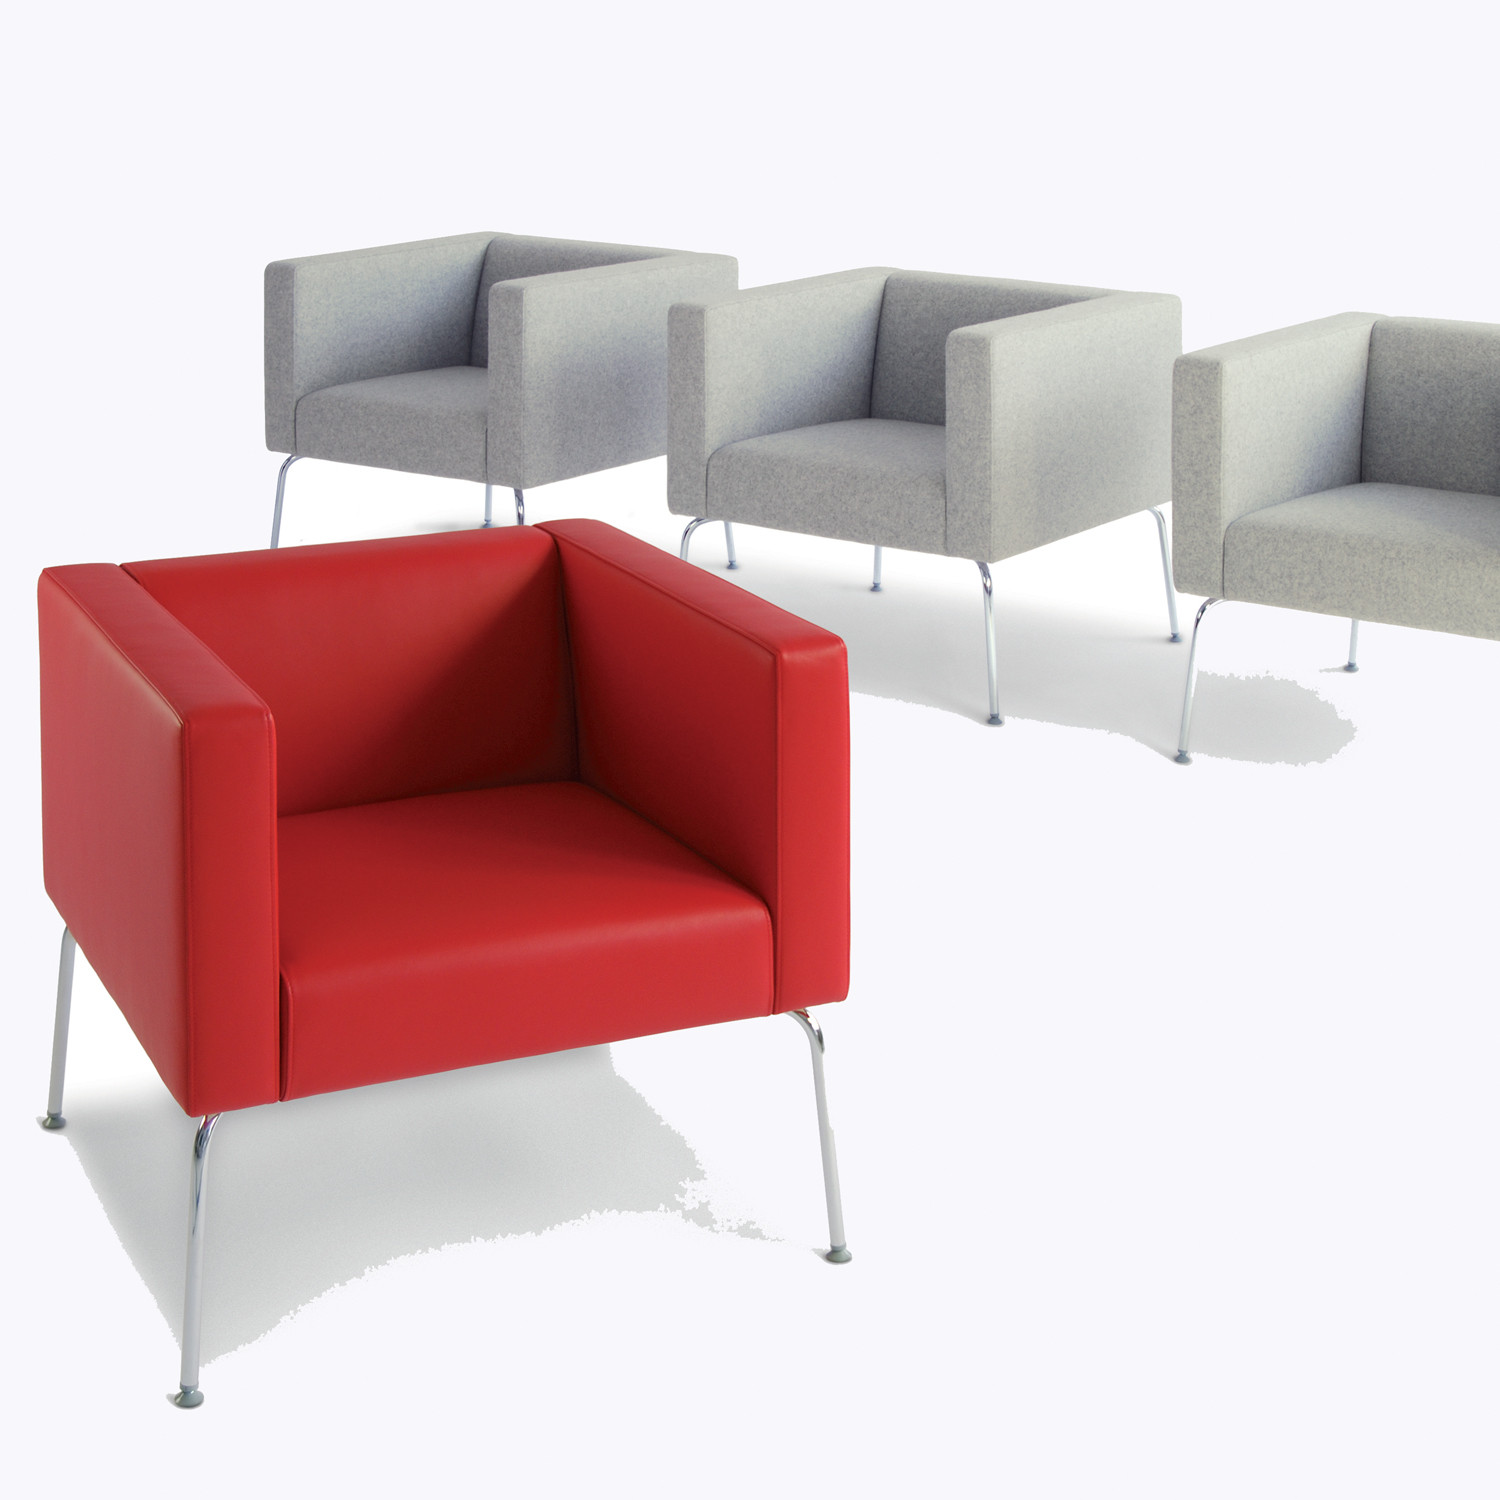 HM67 Compact Armchairs for the Office